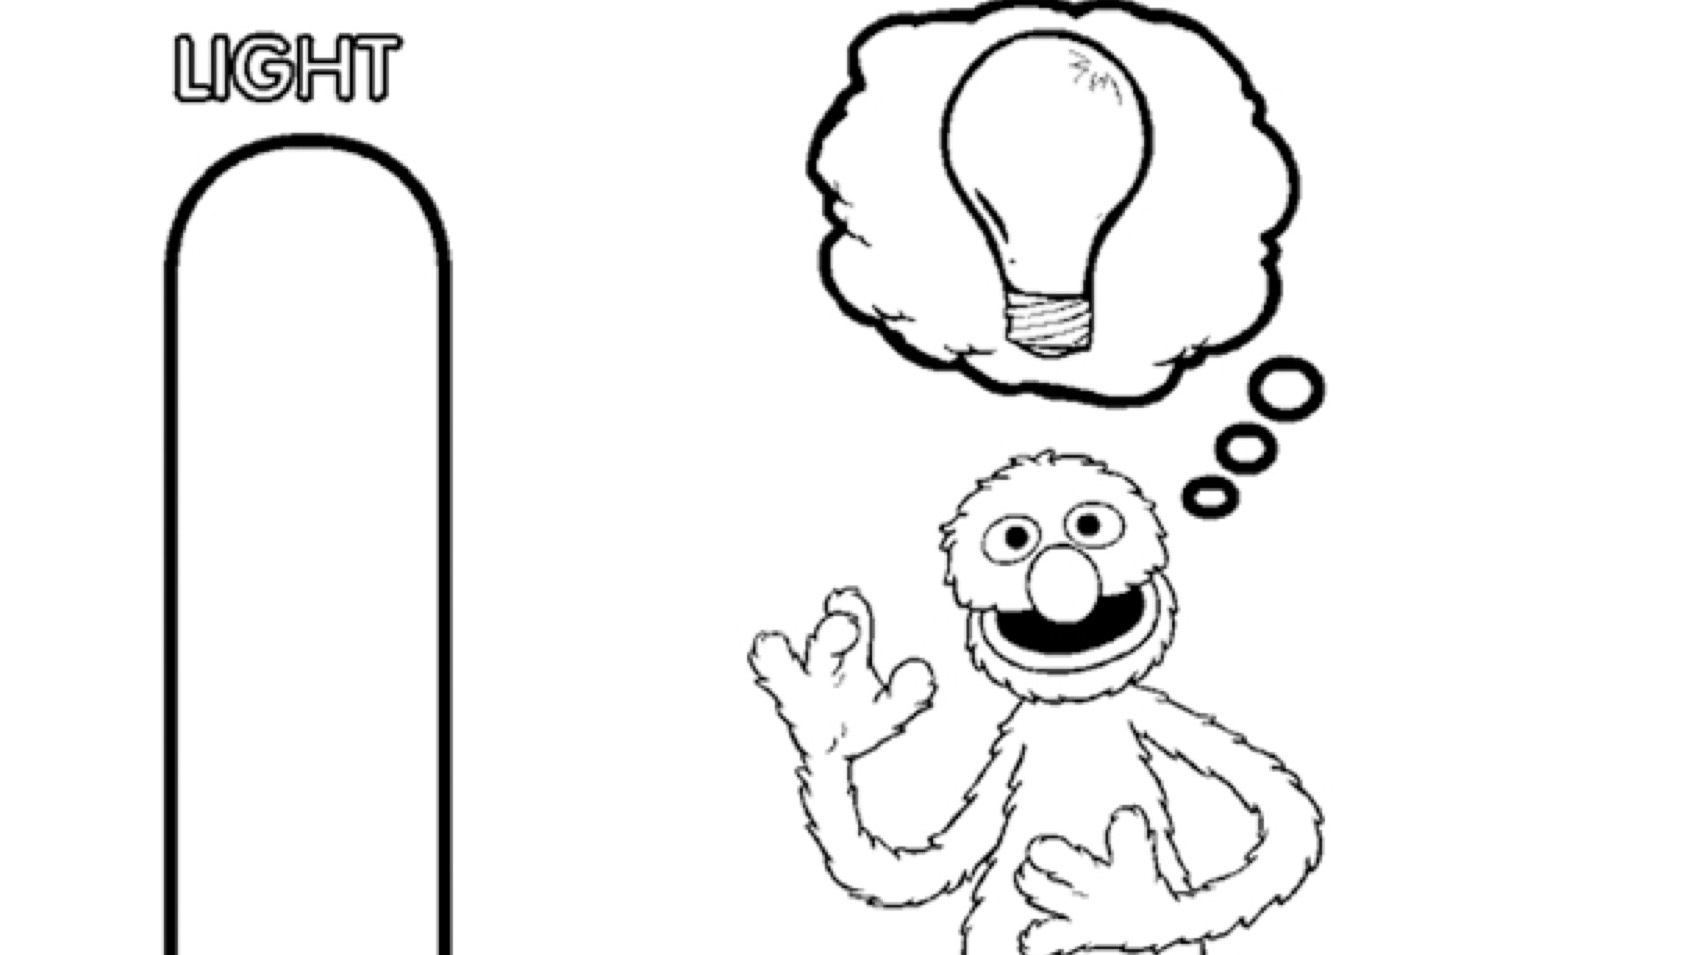 The Letter L Coloring Page Kids Coloring Pbs Kids For Parents